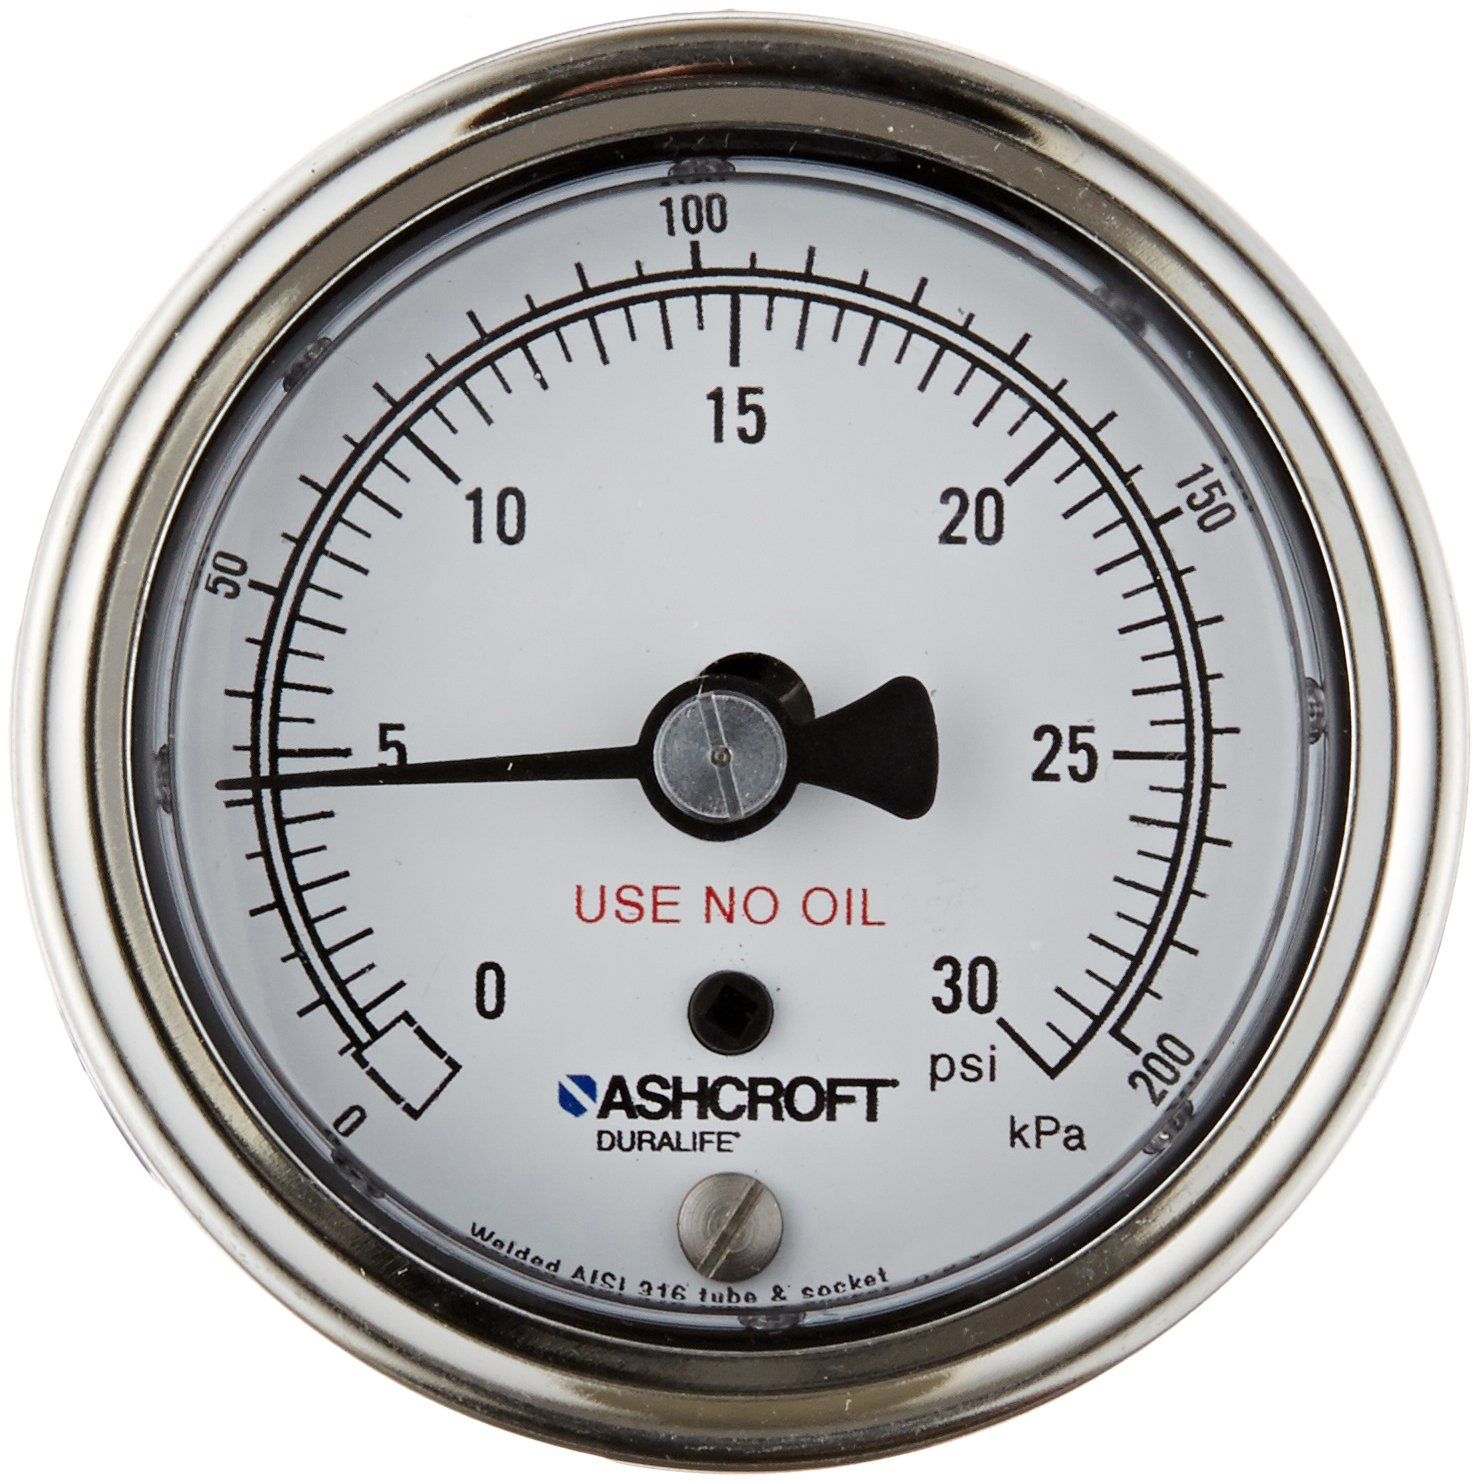 Ashcroft Duralife Max 58% OFF Type 1009SW Austin Mall Stainless Pr Dry Case Steel Filled